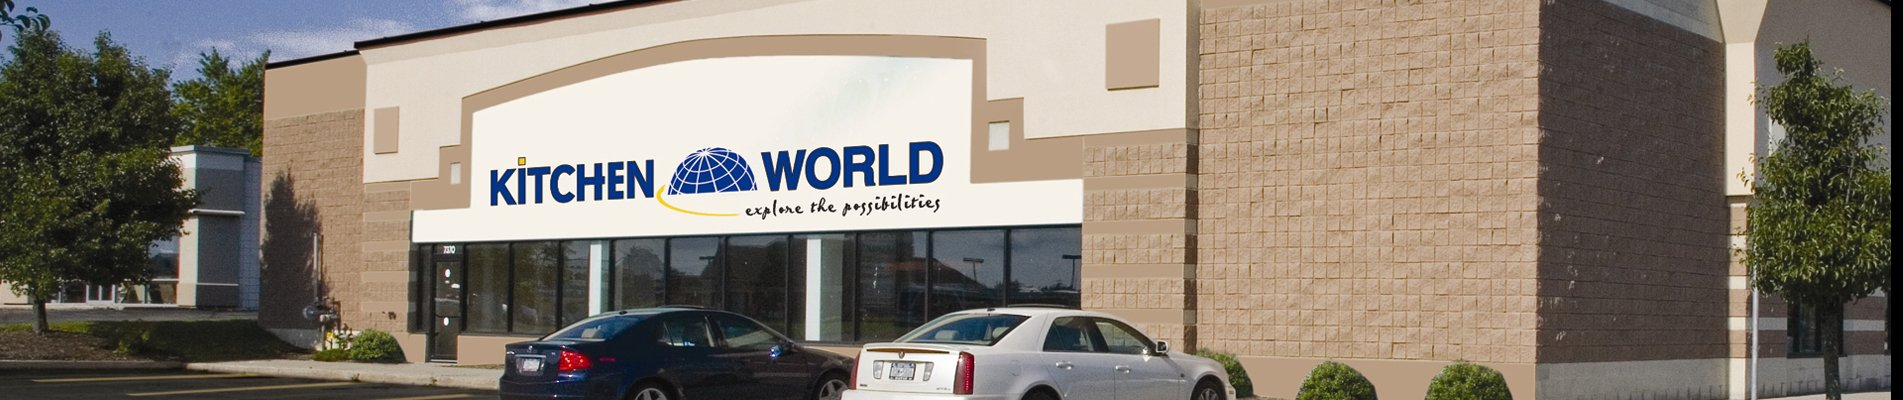 KitchenWorld storefront